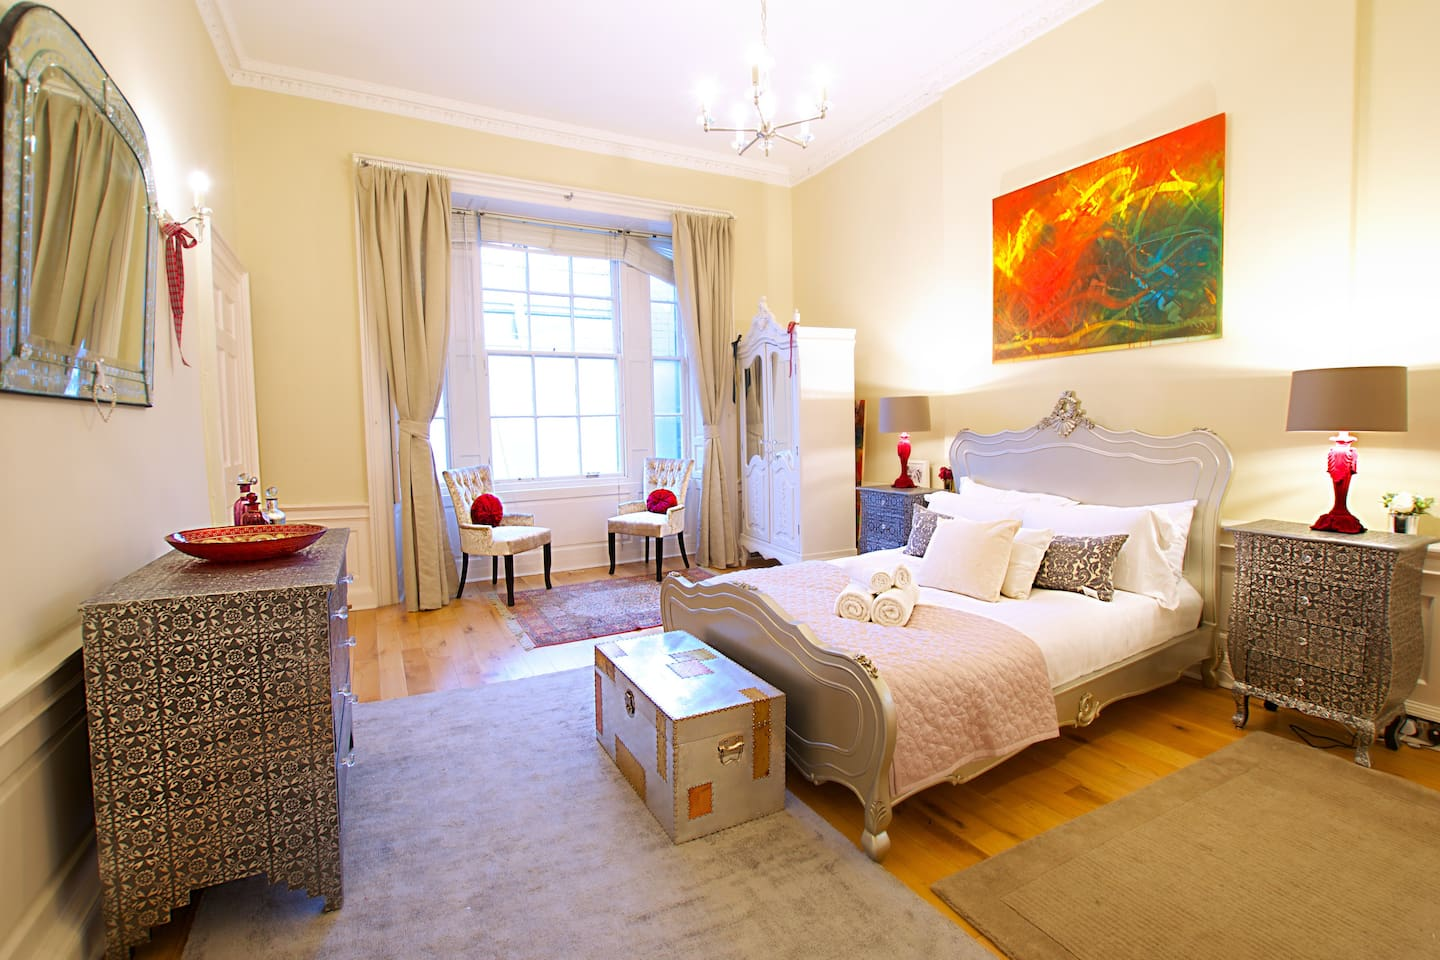 The master bedroom with a large comfy bed to sink into